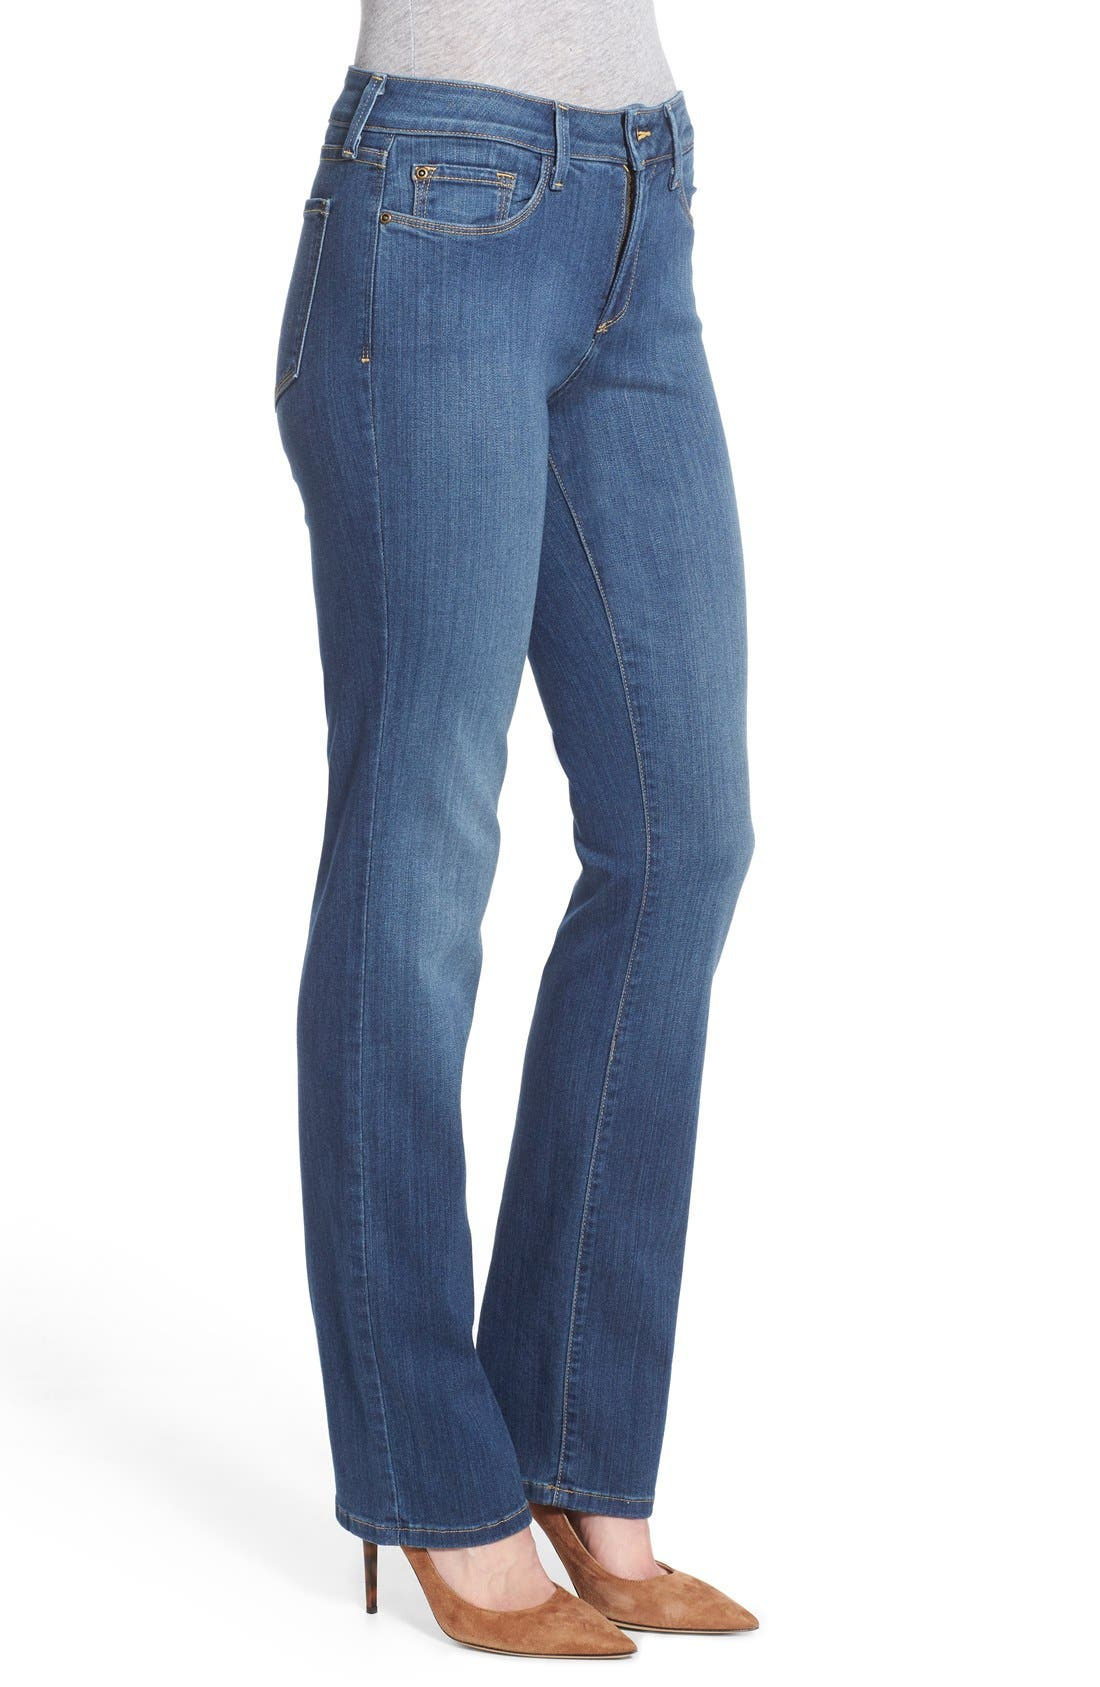 'Marilyn' Stretch Straight Leg Jeans,                             Alternate thumbnail 3, color,                             Anderson